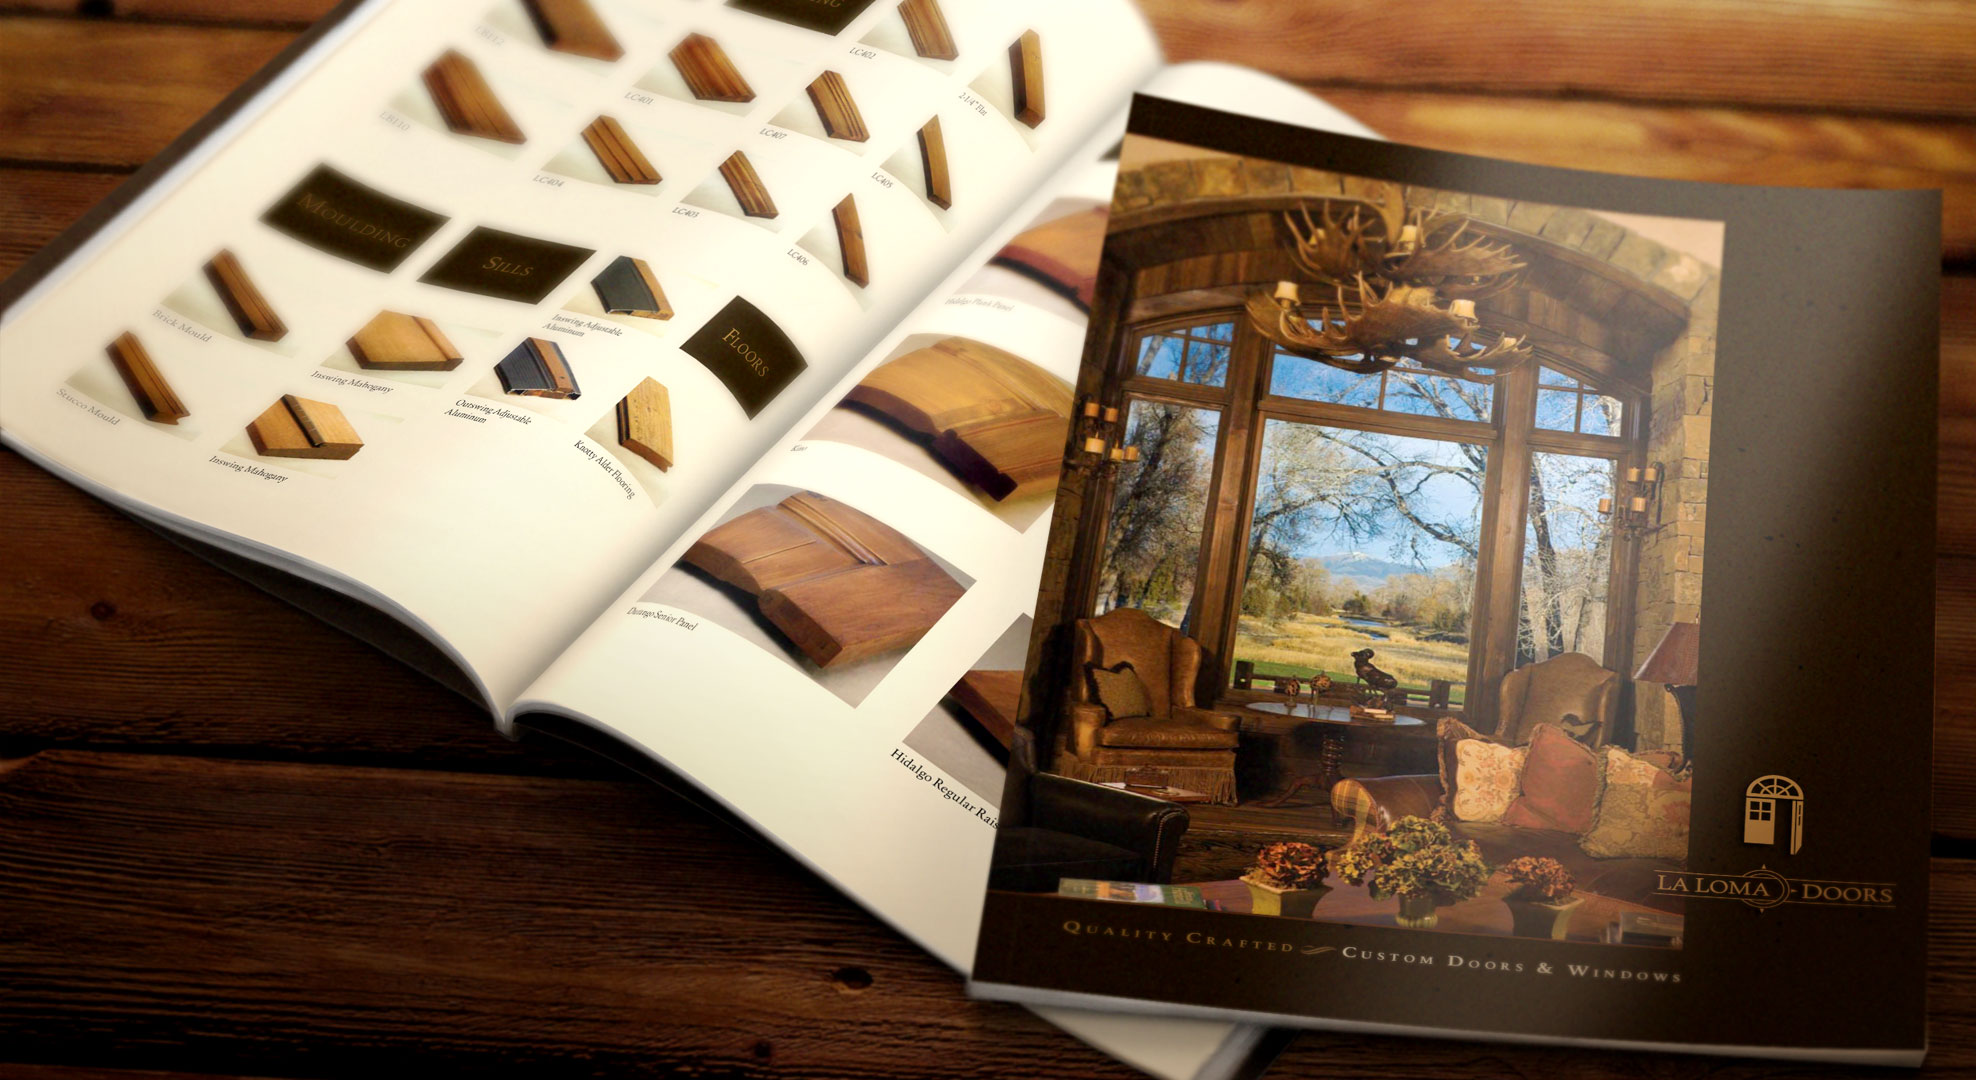 Custom quality doors and windows for custom built homes. We hired a photographer to shoot all aspects and styles of the product along with the woodworking shop and finished installation. It was a big project and the finished catalog was beautiful and well-received.